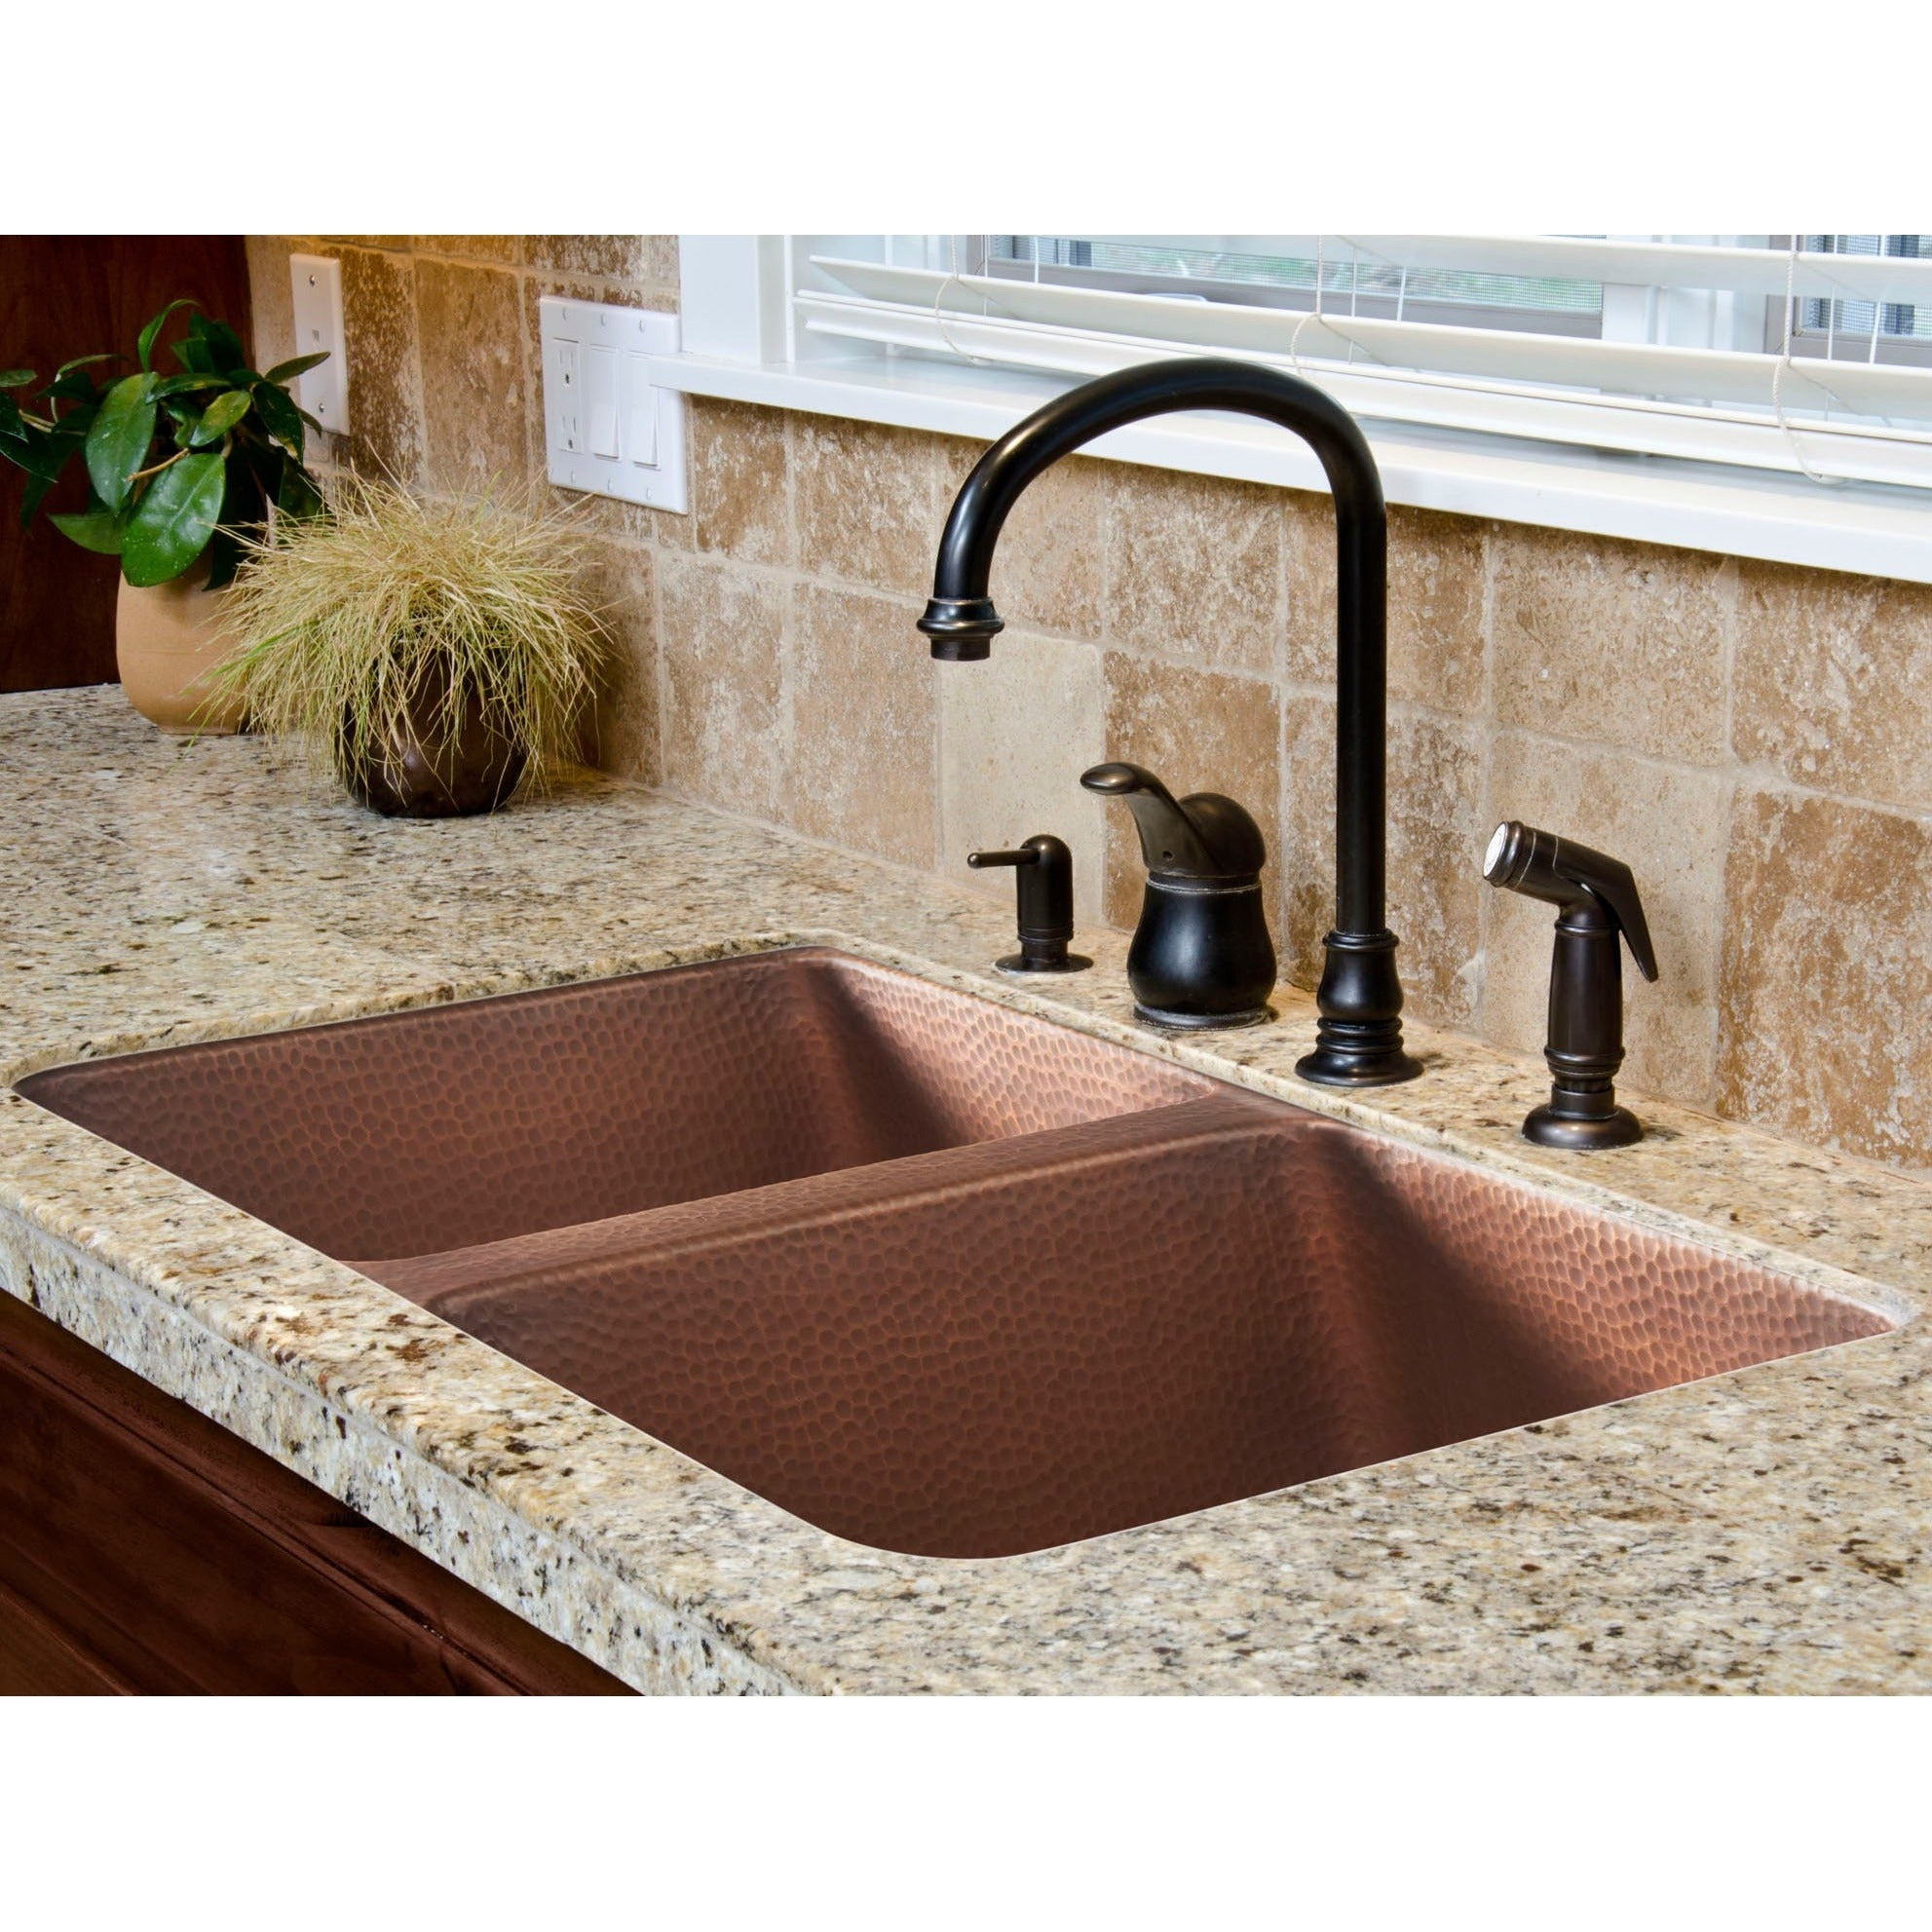 handmade pure inch sink undermount copper solid kitchen uk exotic hammered farmhouse